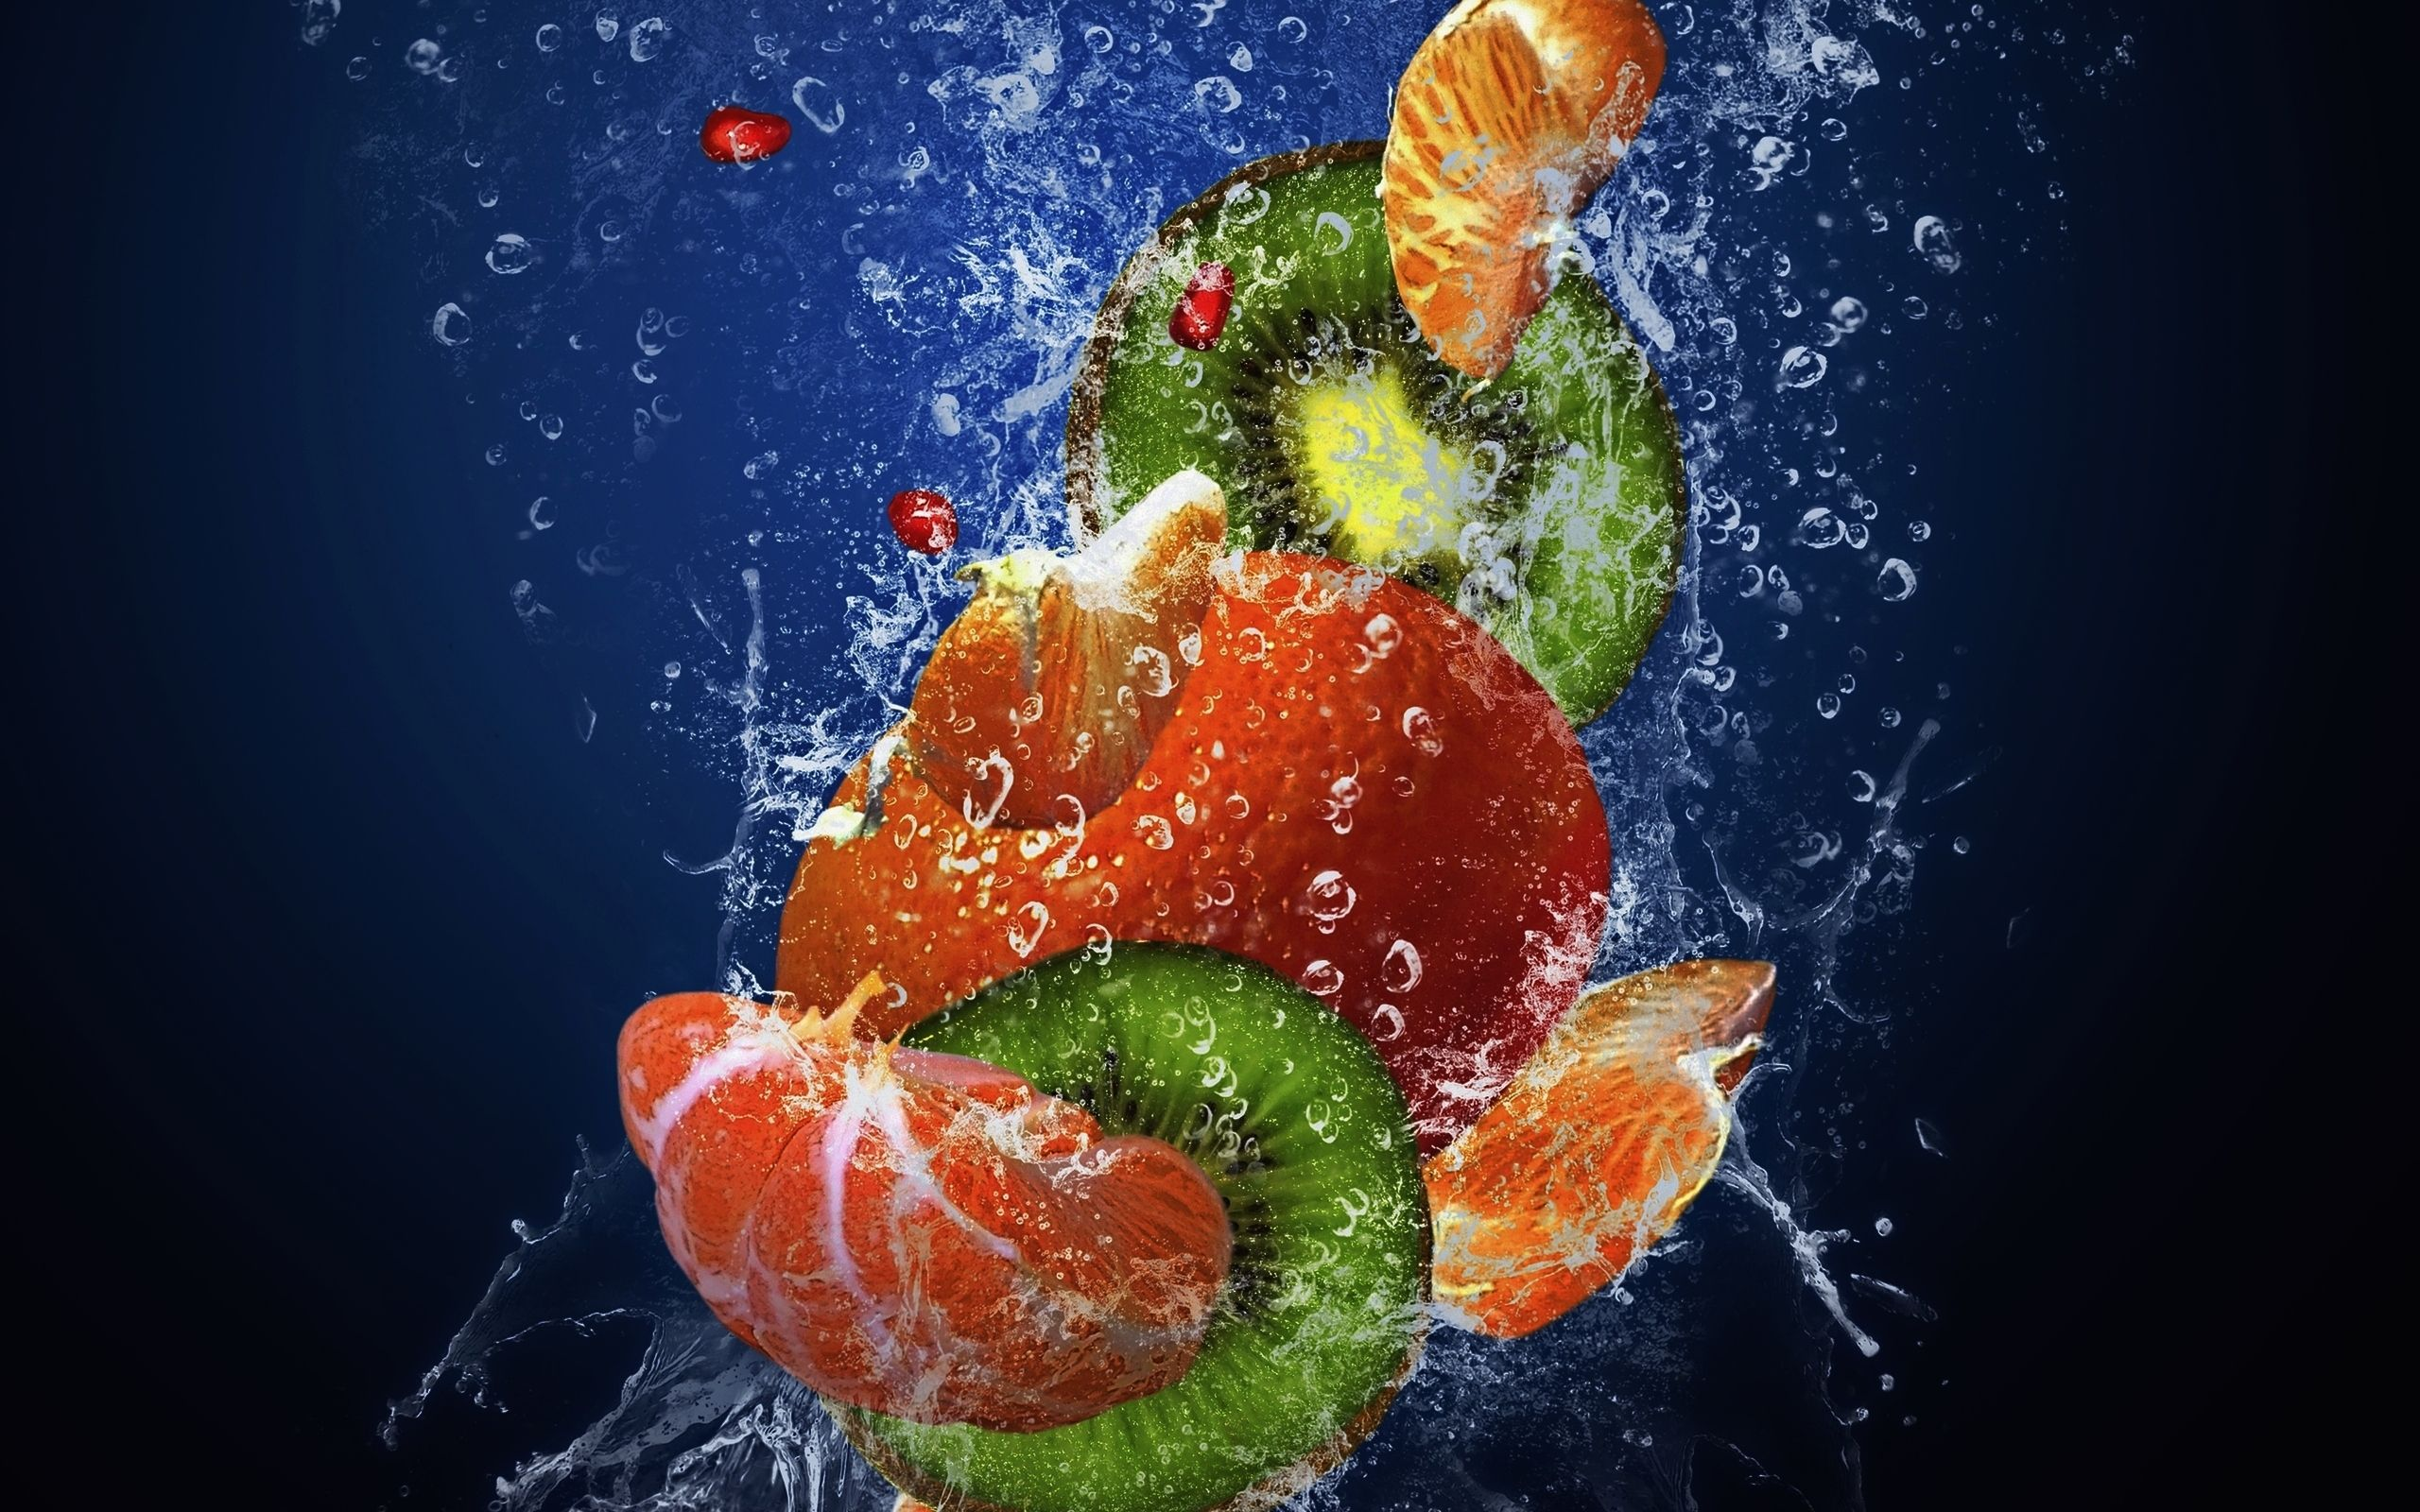 Fruits fresh water drops 2560 1600 water for Fresh pictures